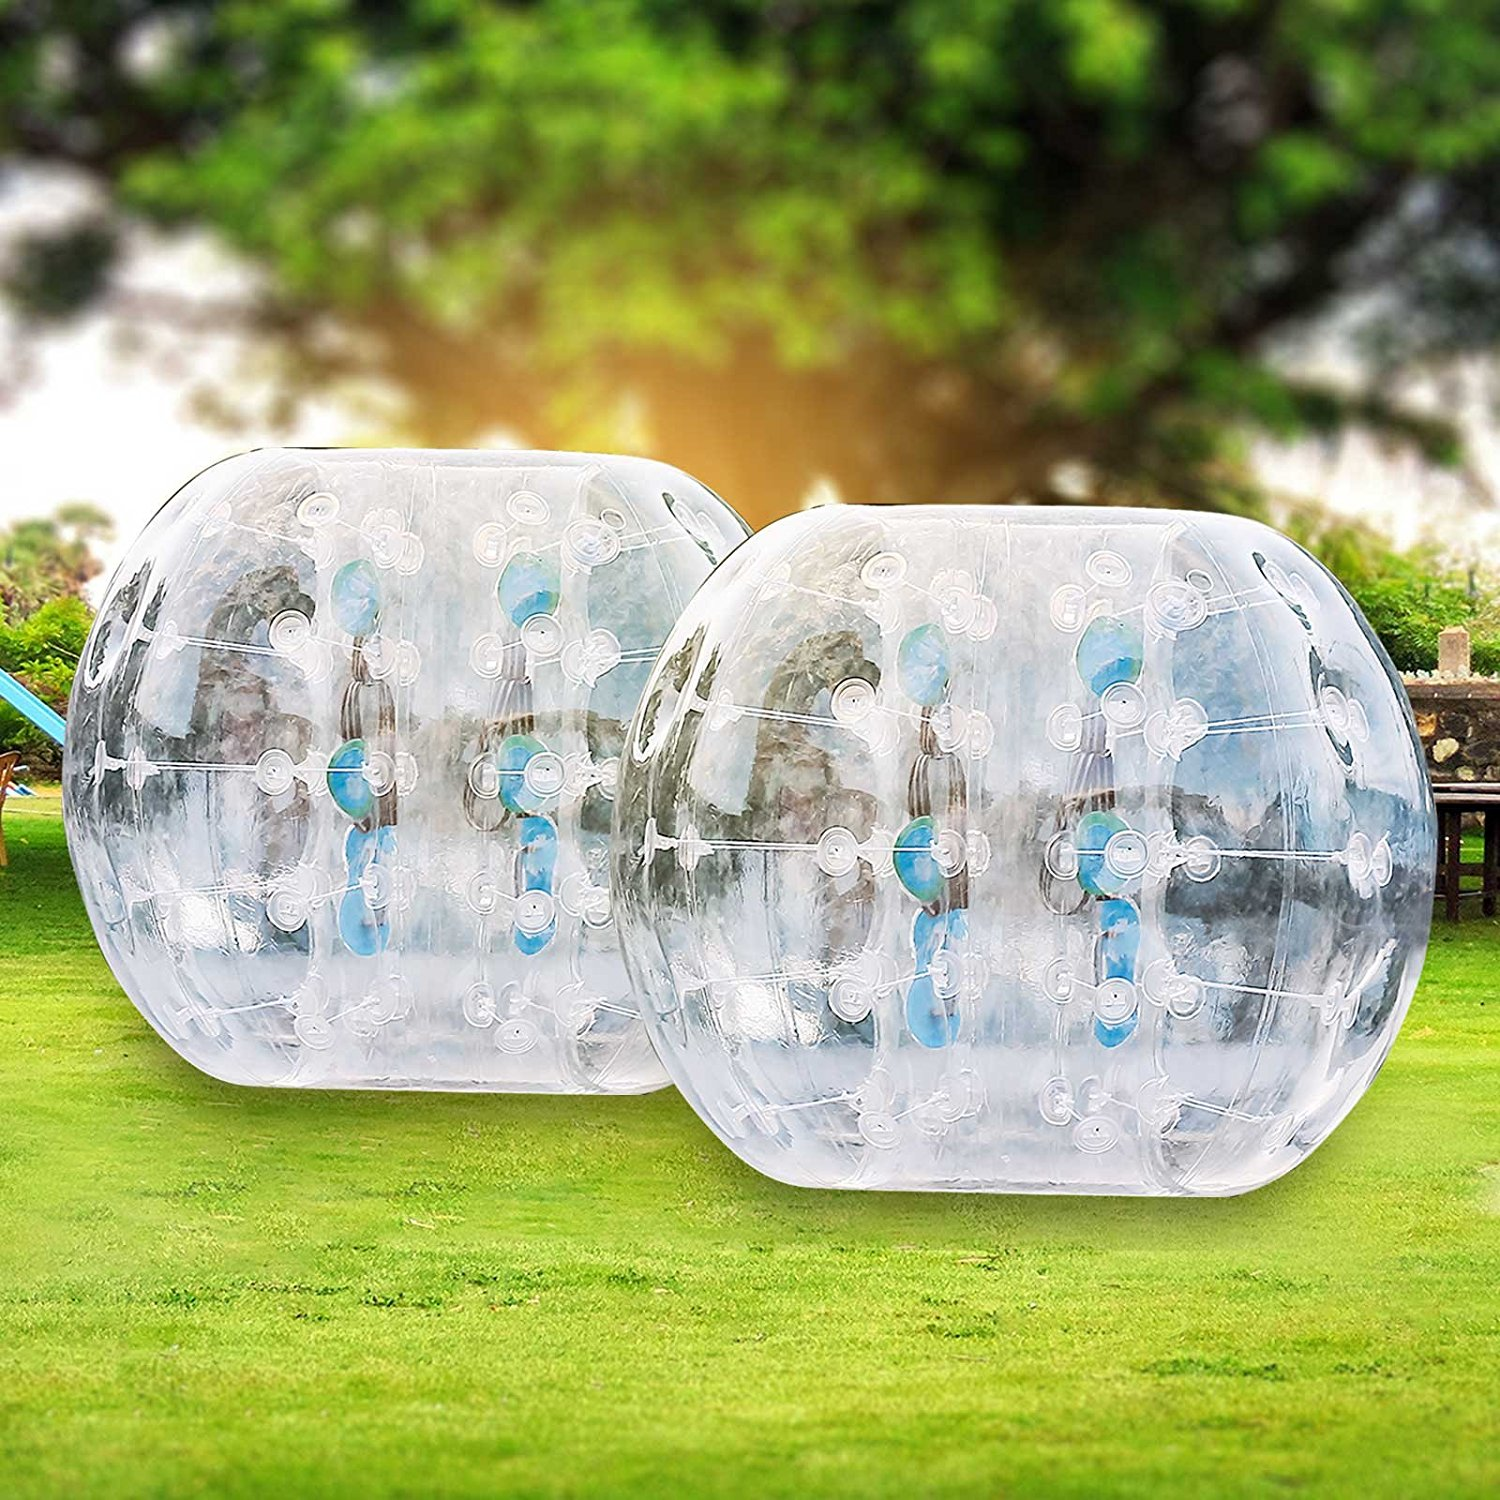 OrangeA Inflatable Bumper Ball Diameter 1.2M 1.5M Bubble Soccer Ball 0.8mm PVC Transparent Material Zorb Ball for Adults and Kids